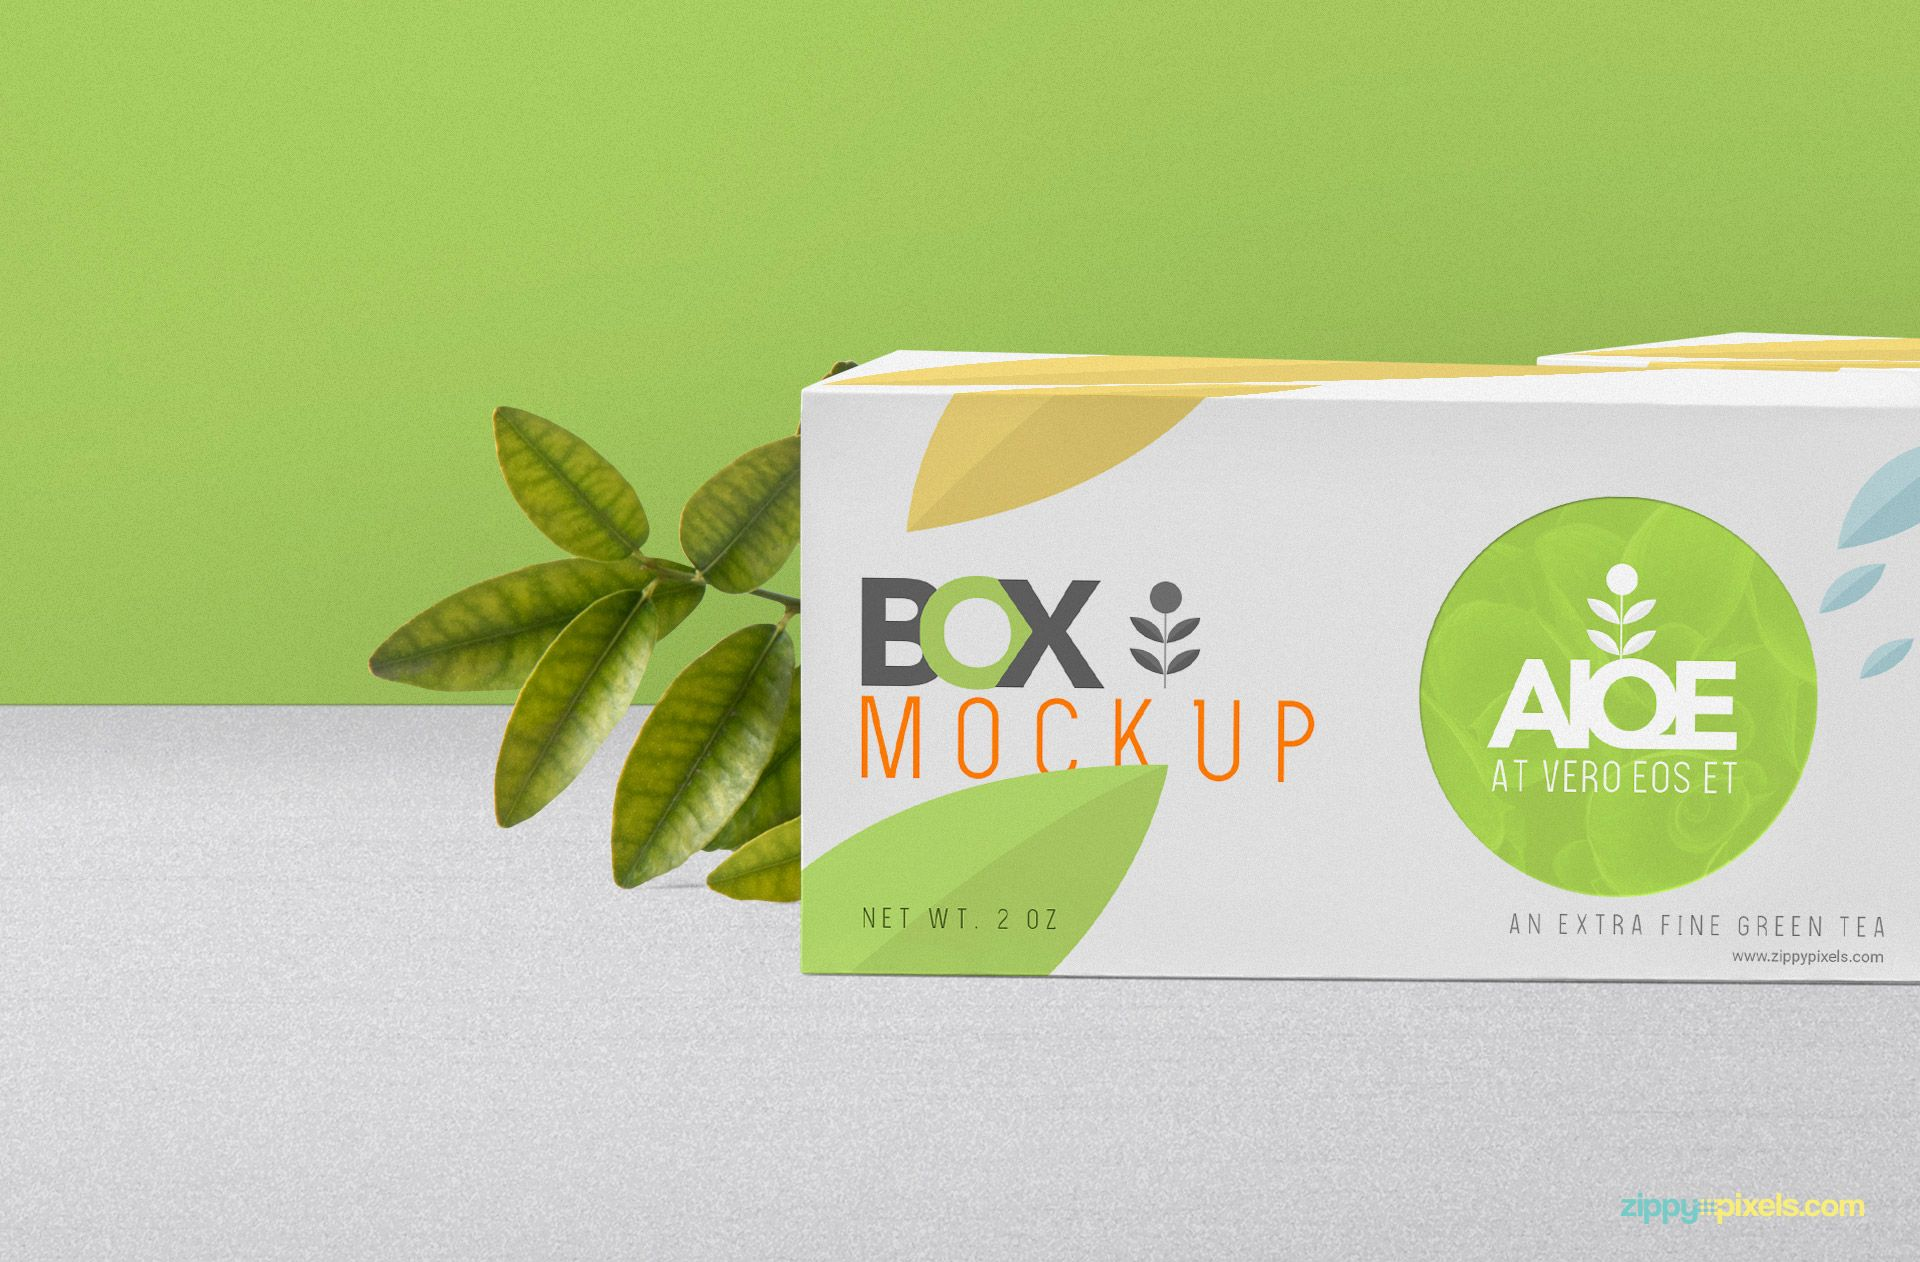 Download Free Wonderful Tea Packaging Mockup Zippypixels Tea Packaging Packaging Mockup Mockup